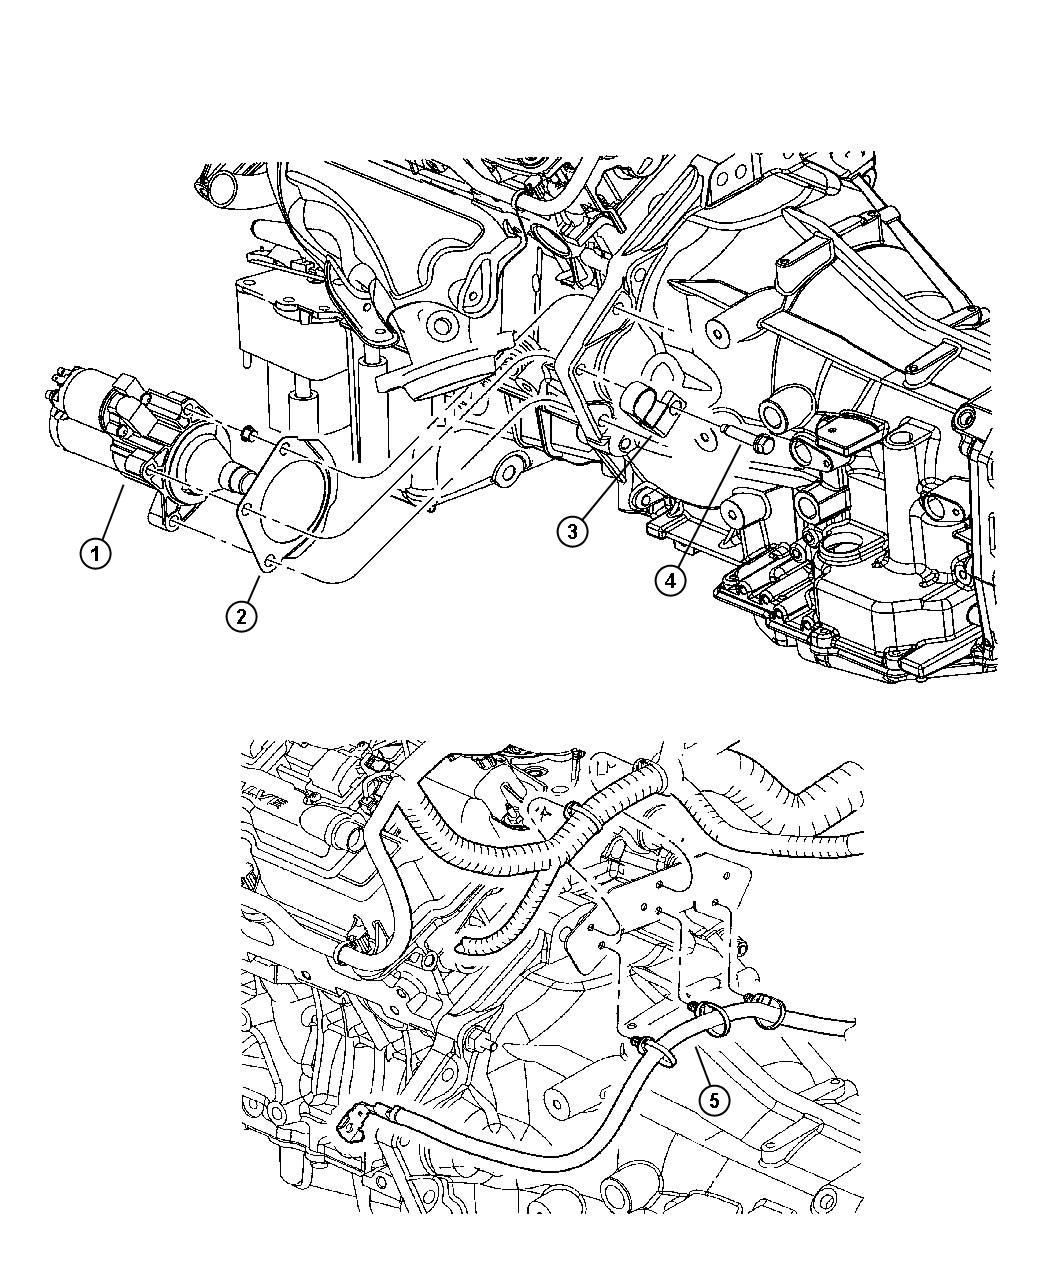 R T Starter And Related Parts